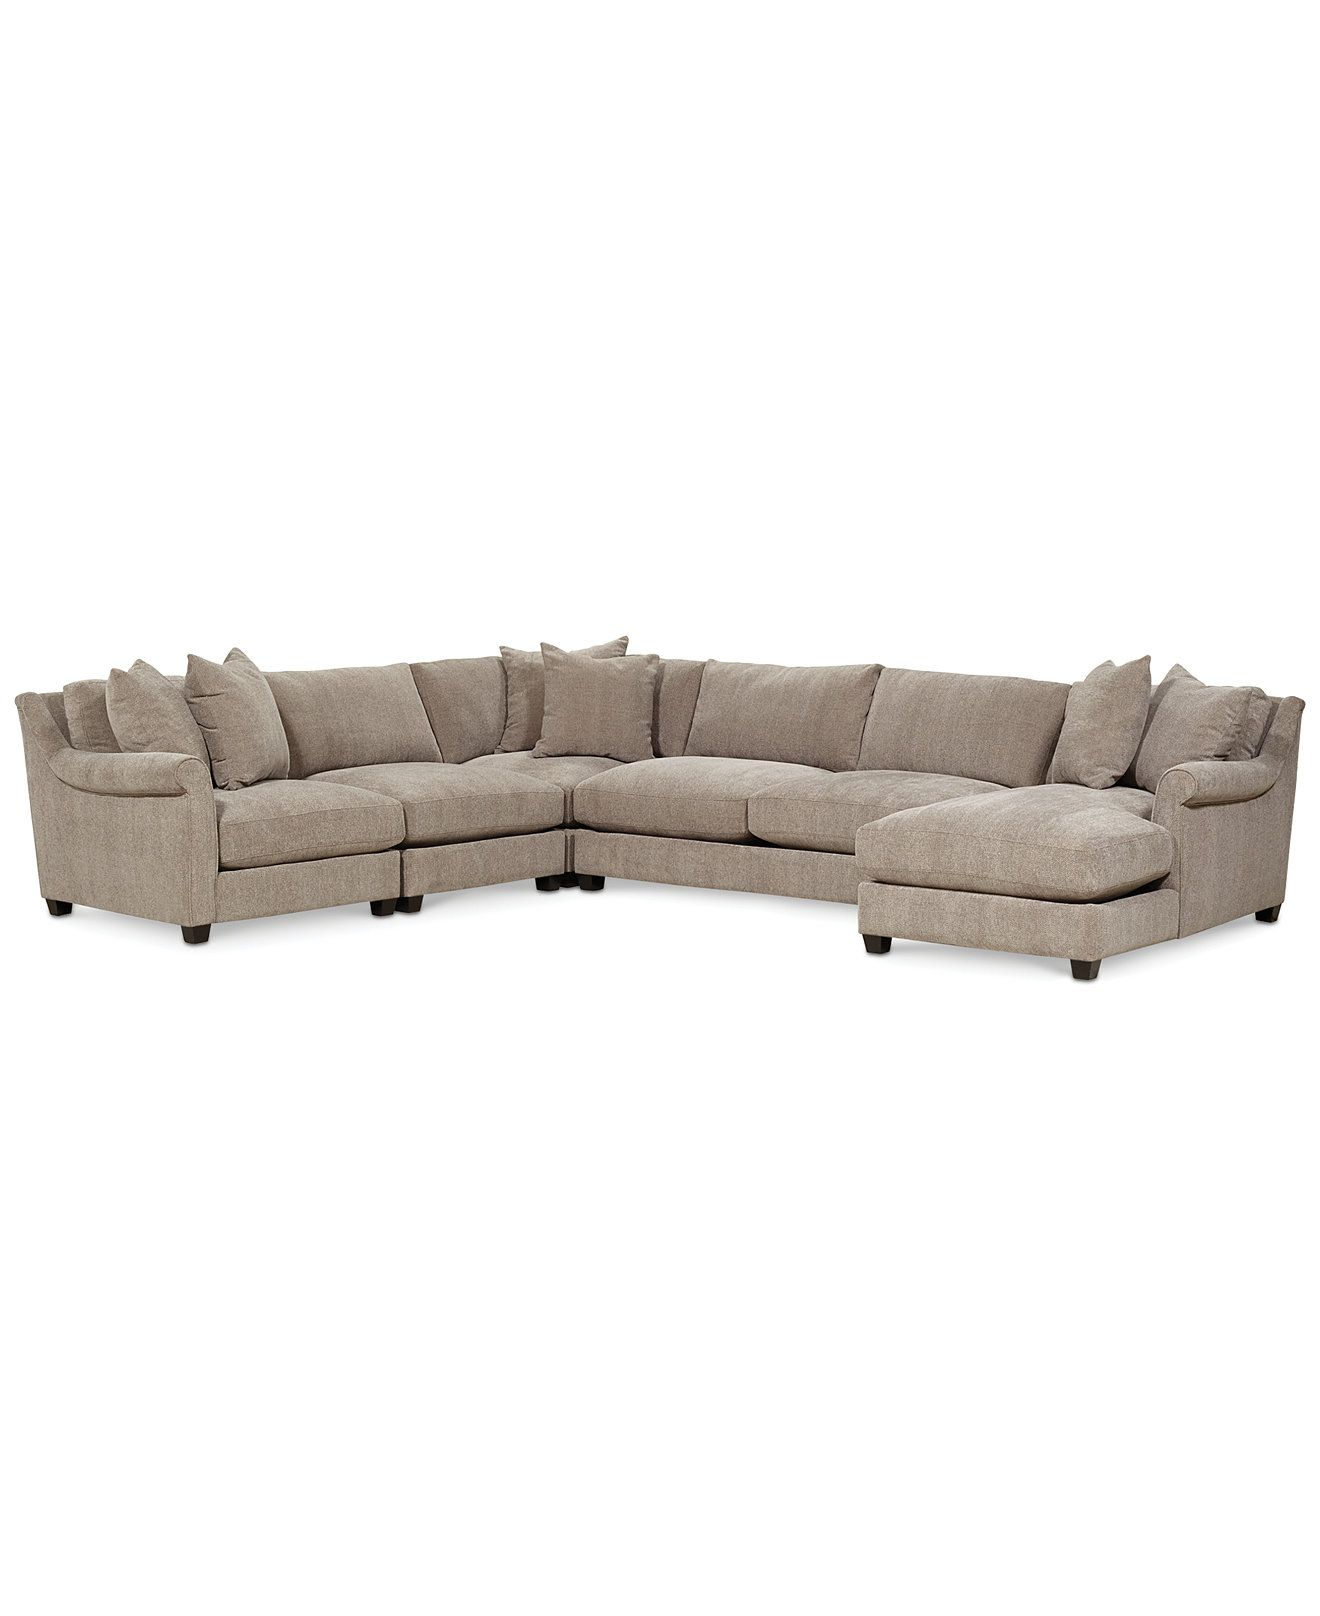 Westen fabric 5 piece chaise sectional couches s